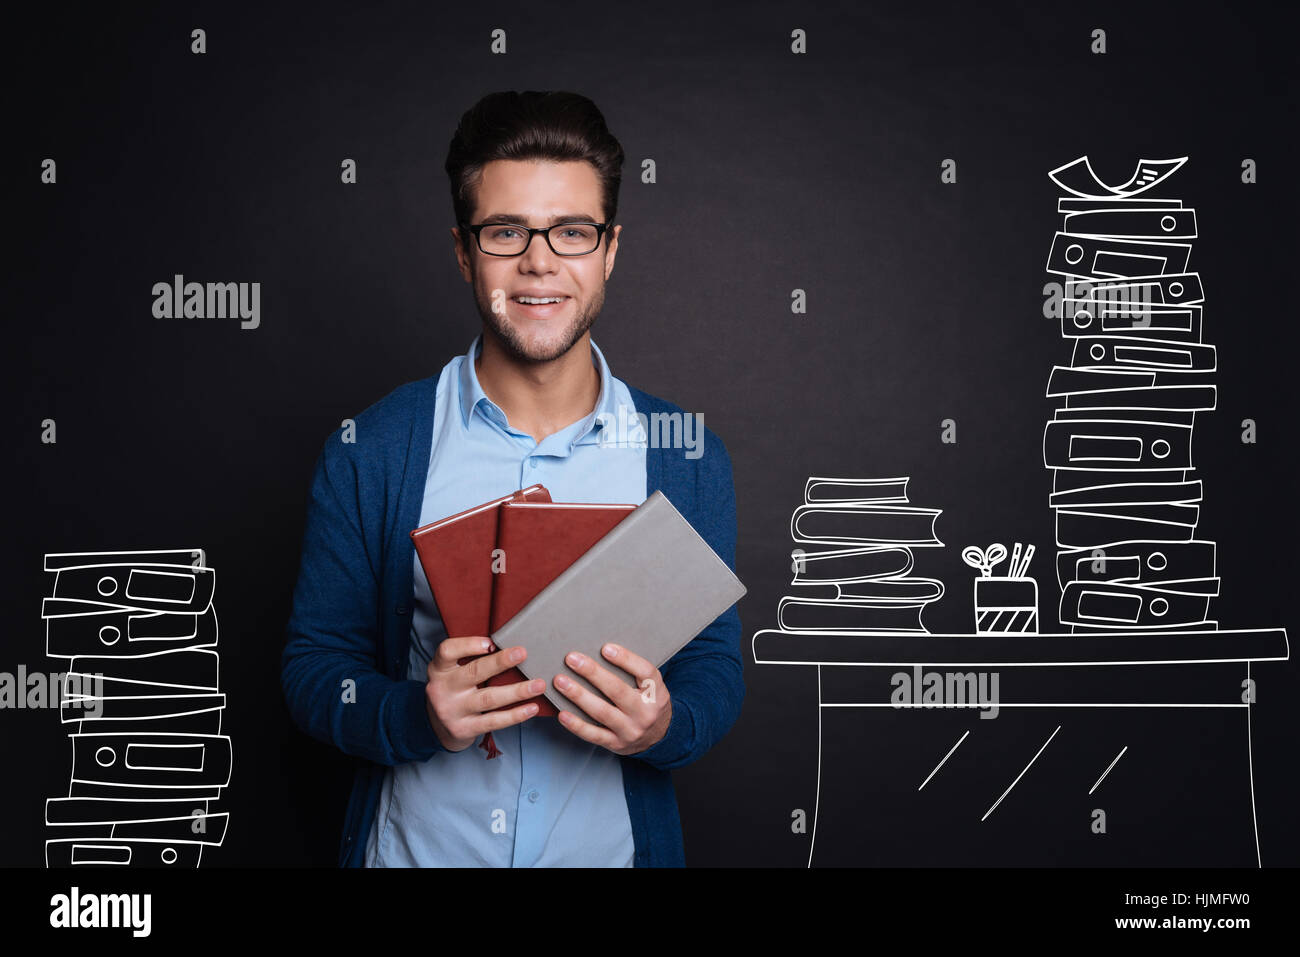 Joyful young man holding diaries. - Stock Image